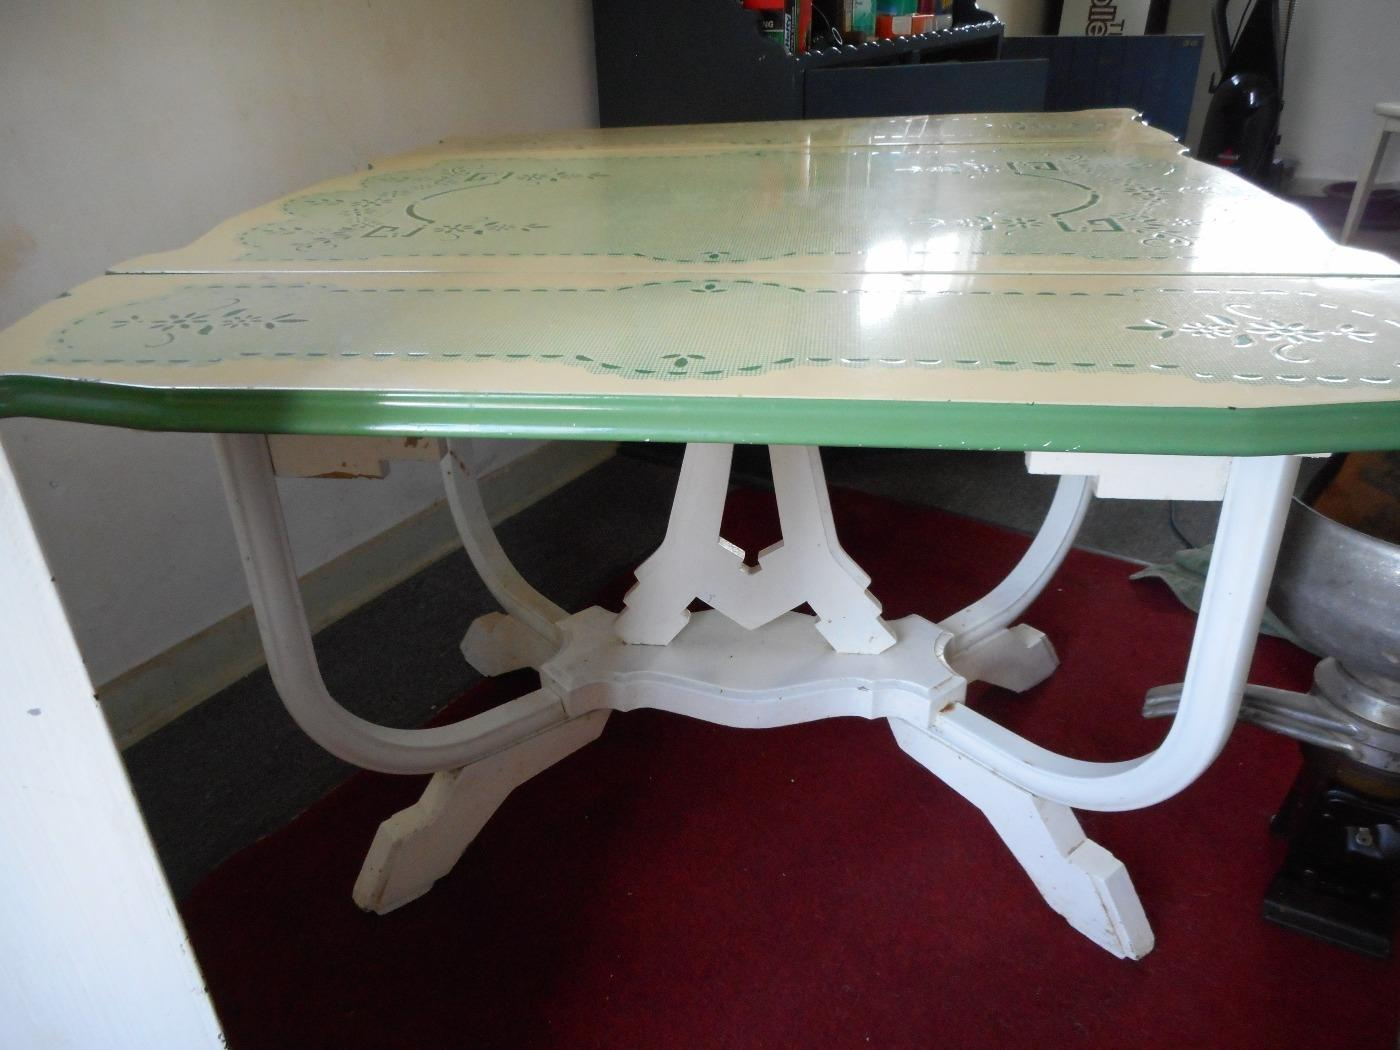 Best Vintage Porcelain Enamel Top Kitchen Table With Leaves And ...